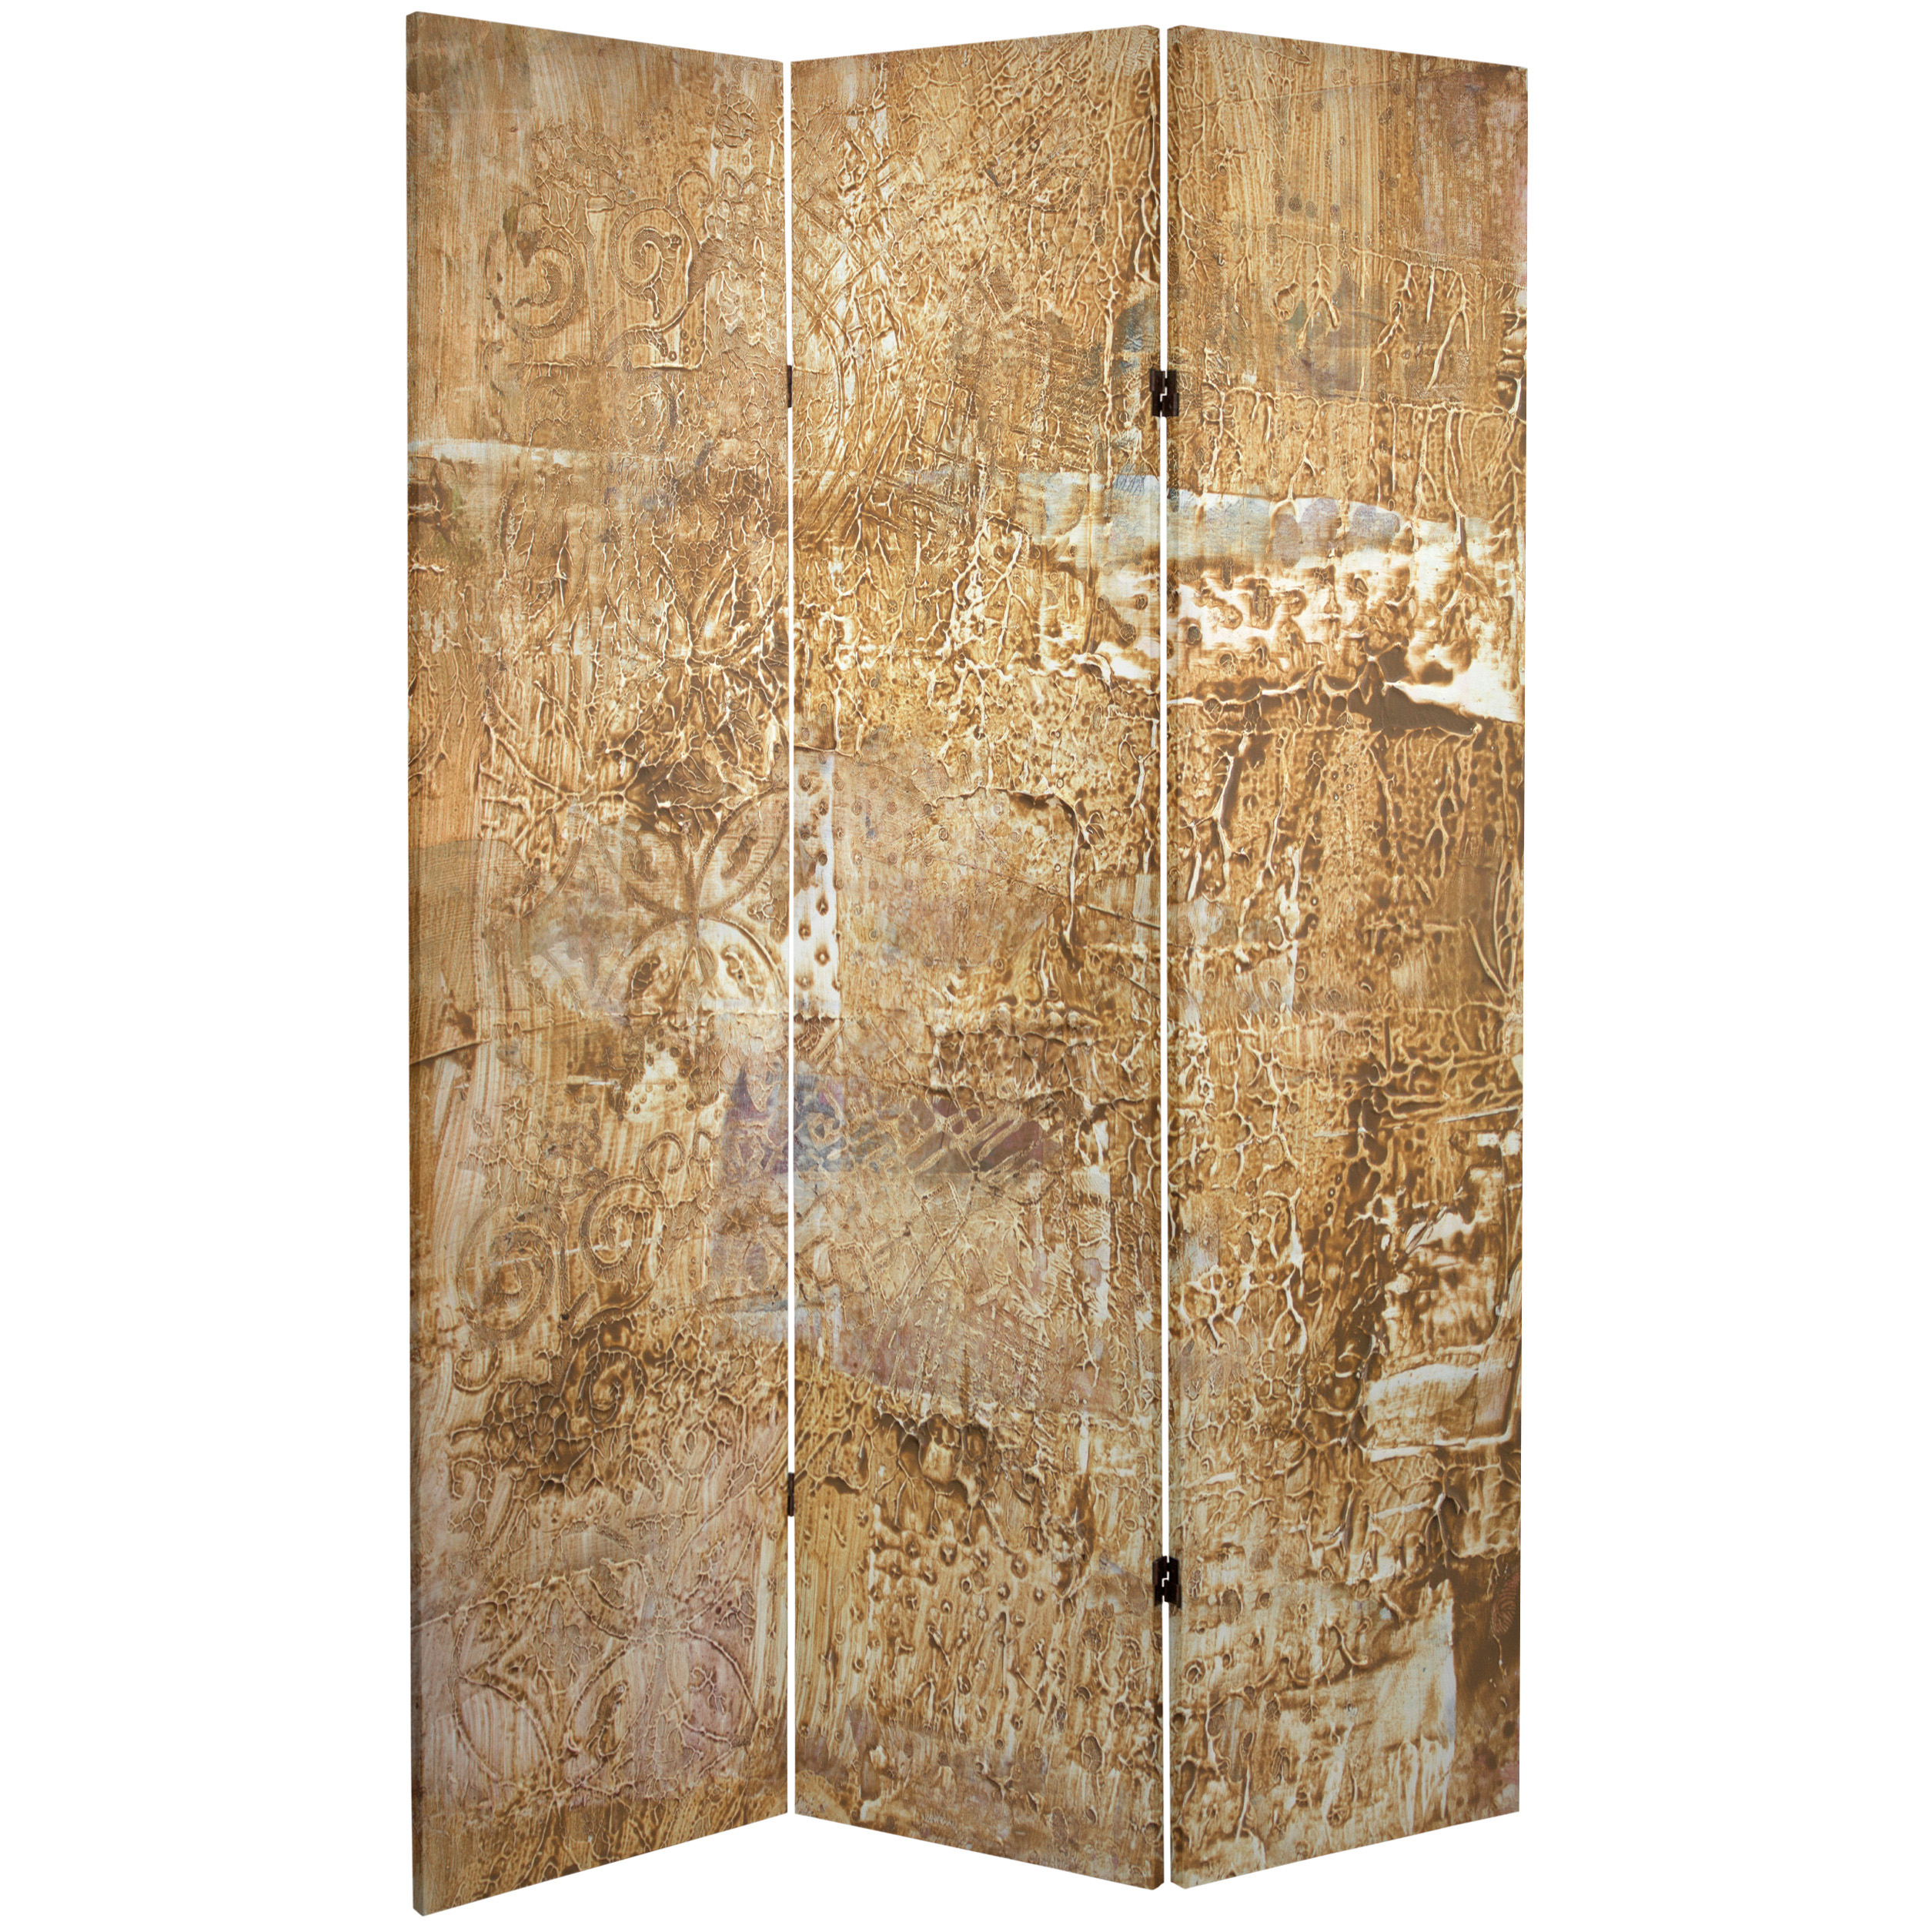 Buy 6 Ft Tall Double Sided Sandy Meadow Canvas Room